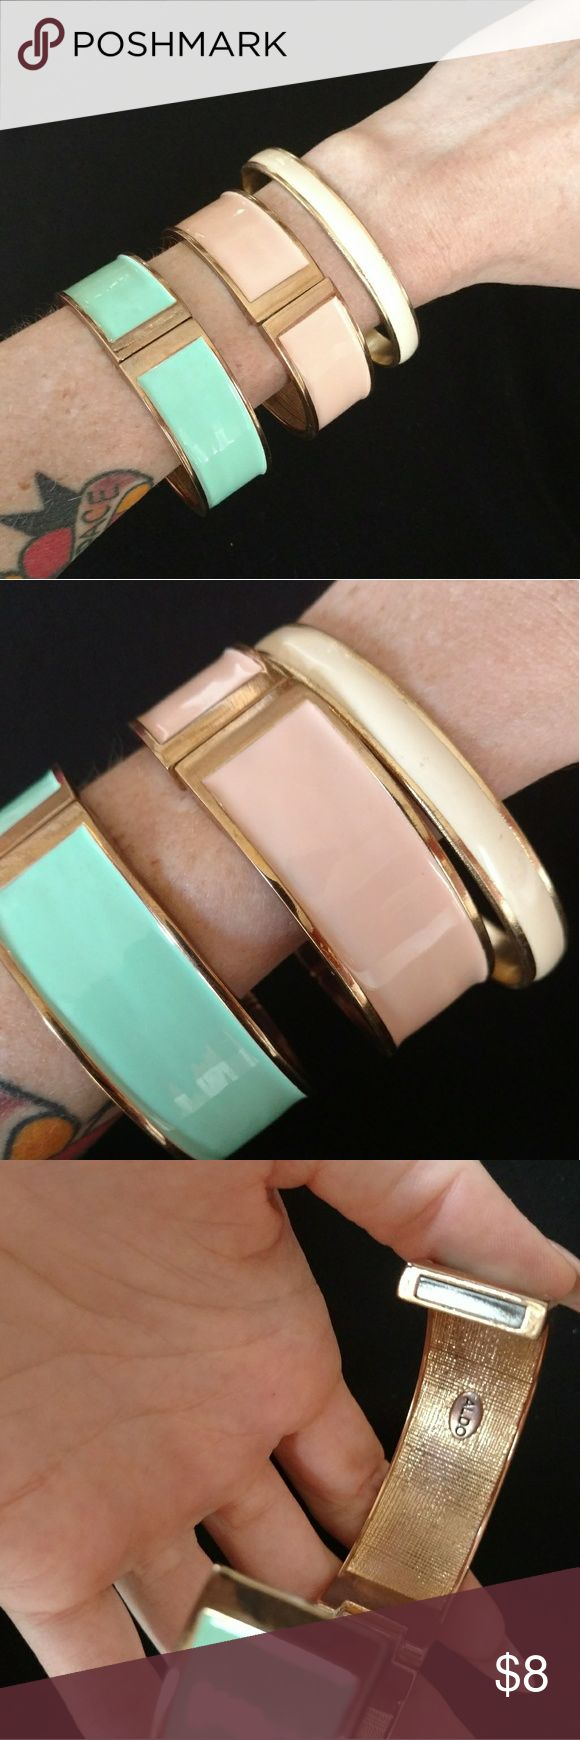 Set of 3 Aldo pastel bangles These bracelets are super fun and versatile for any spring or summer outfit. The hardware on them is all gold so they're easier to layer and mix and match with other bracelets and jewelry. The two wide Bangles open up and secure together with a magnet. One is mint green one is baby pink and one is ivory, they all have a shiny lacquered kind of finish. They're very sturdy and durable, they're definitely not liable to break or crack easily despite being from a shoe…